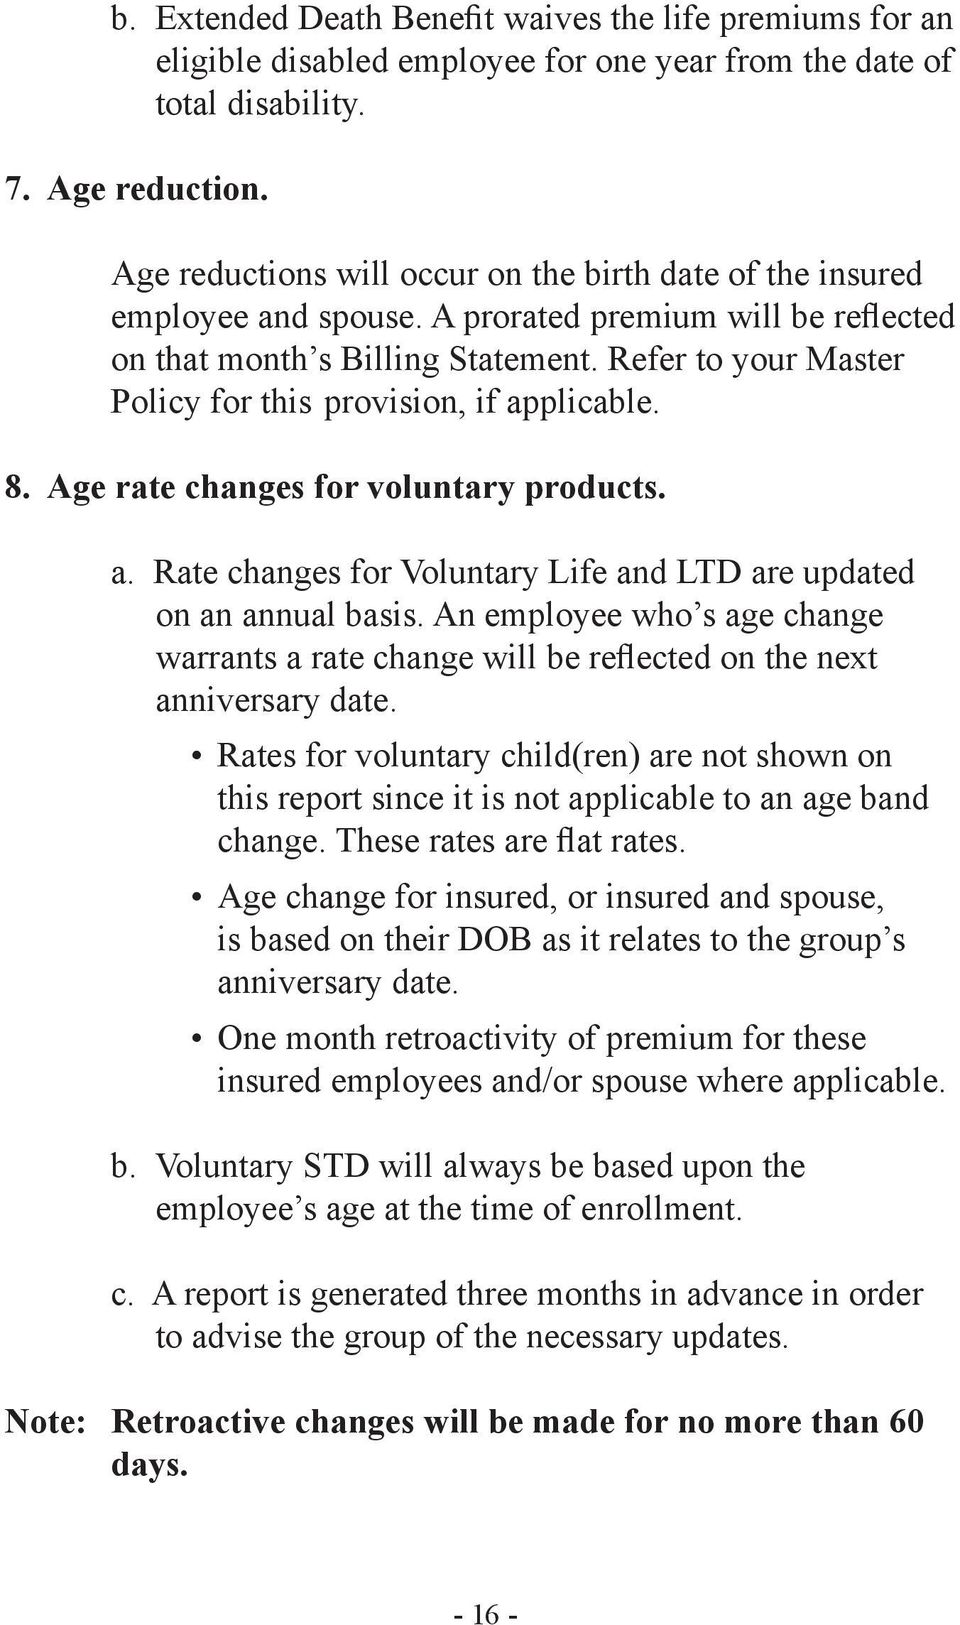 Refer to your Master Policy for this provision, if applicable. 8. Age rate changes for voluntary products. a. Rate changes for Voluntary Life and LTD are updated on an annual basis.